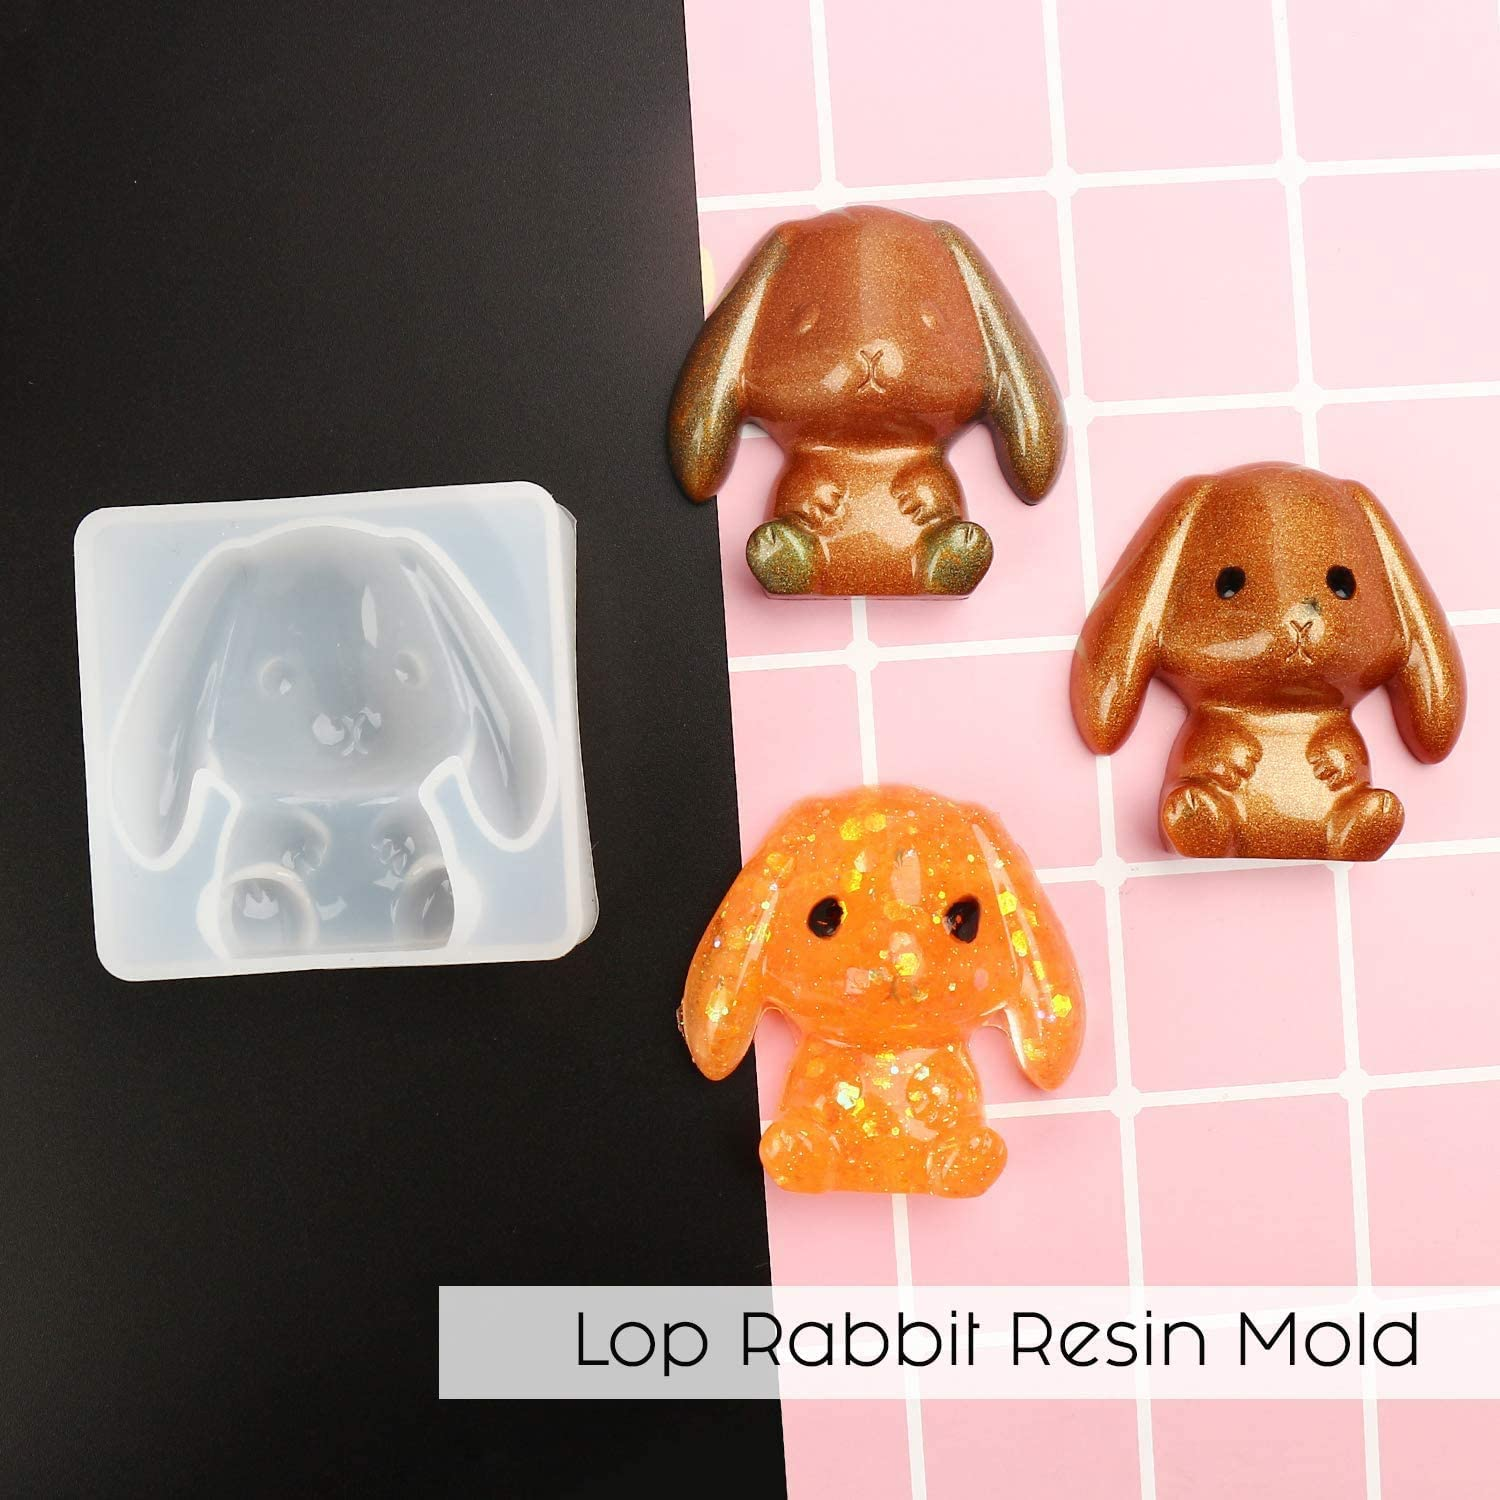 Lop Rabbit Epoxy Resin Silicone Molds for Resin Crafts DIY Xmas Bears Festival Decoration TEUN 7PCS Animal Resin Molds Includes Exclusive Authorised Sphynx Cat